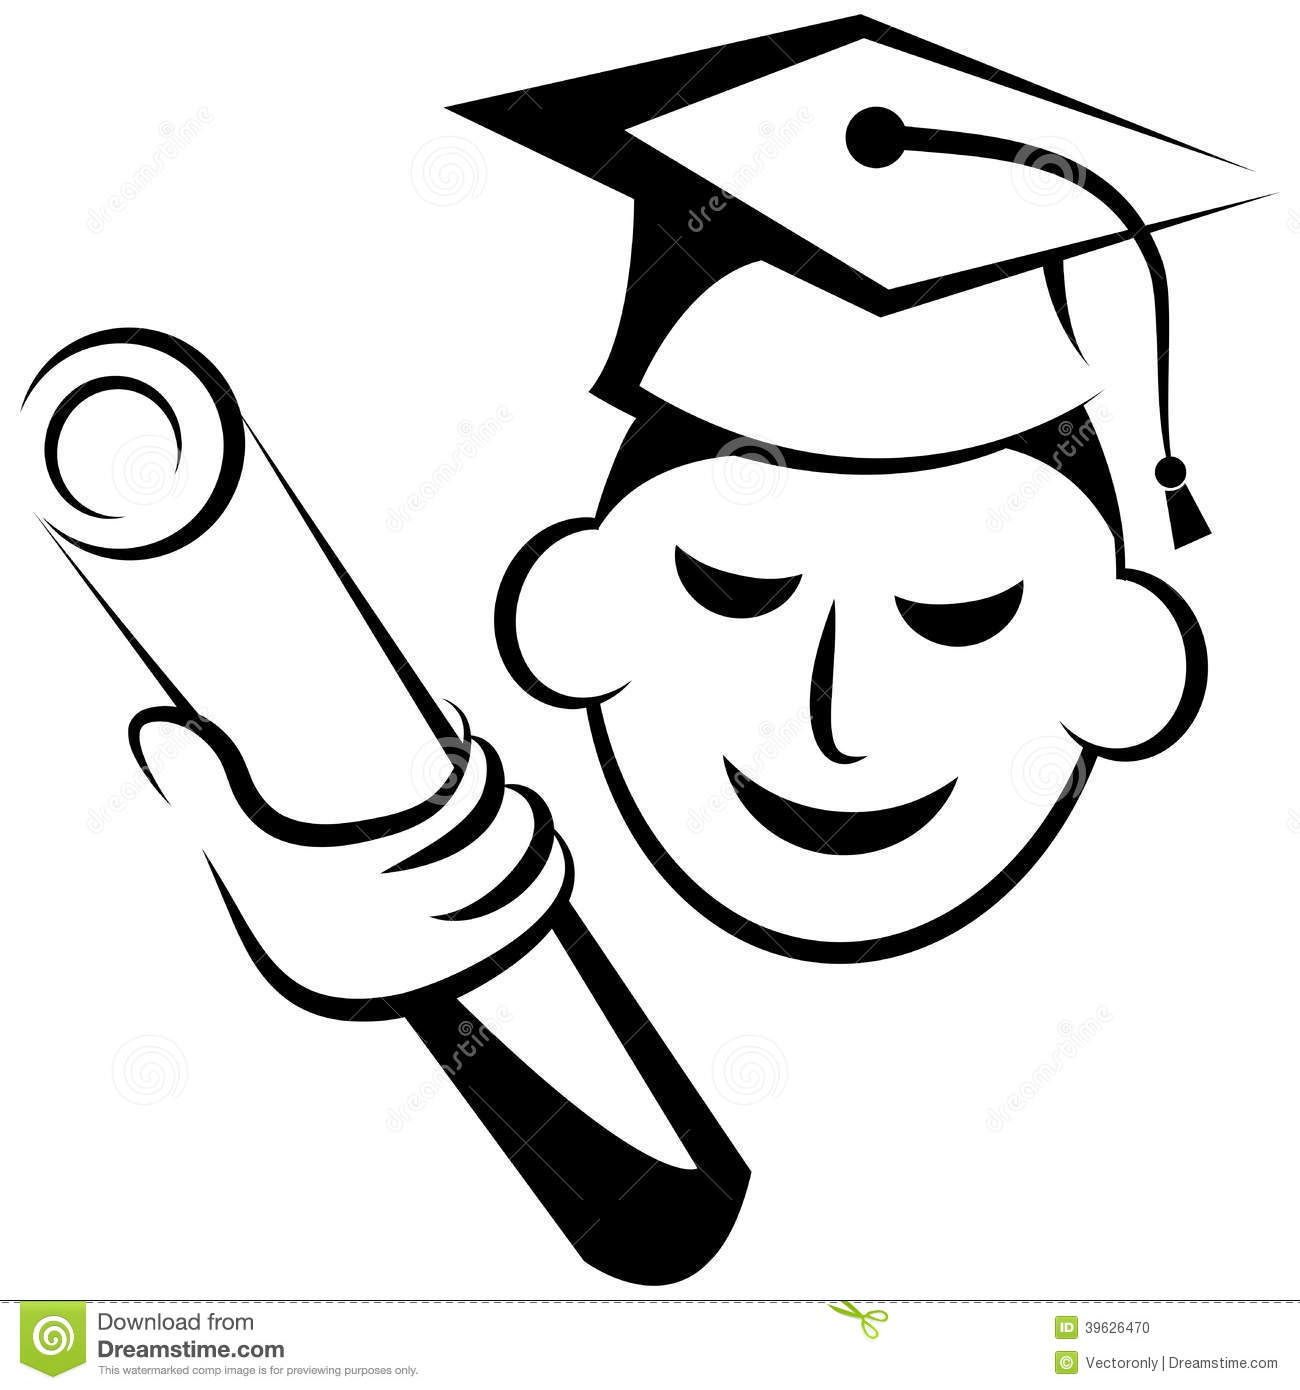 Graduation Logo Stock Vector  Image: 39626470